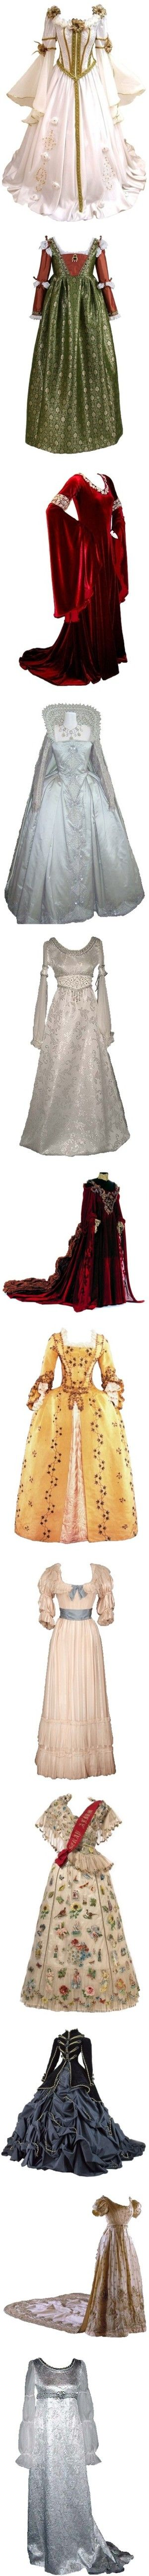 My historic clothing edits by alysianfields on Polyvore featuring dresses, gowns, medieval, costumes, historical, renaissance, costume, long dress, long dresses and 18th century